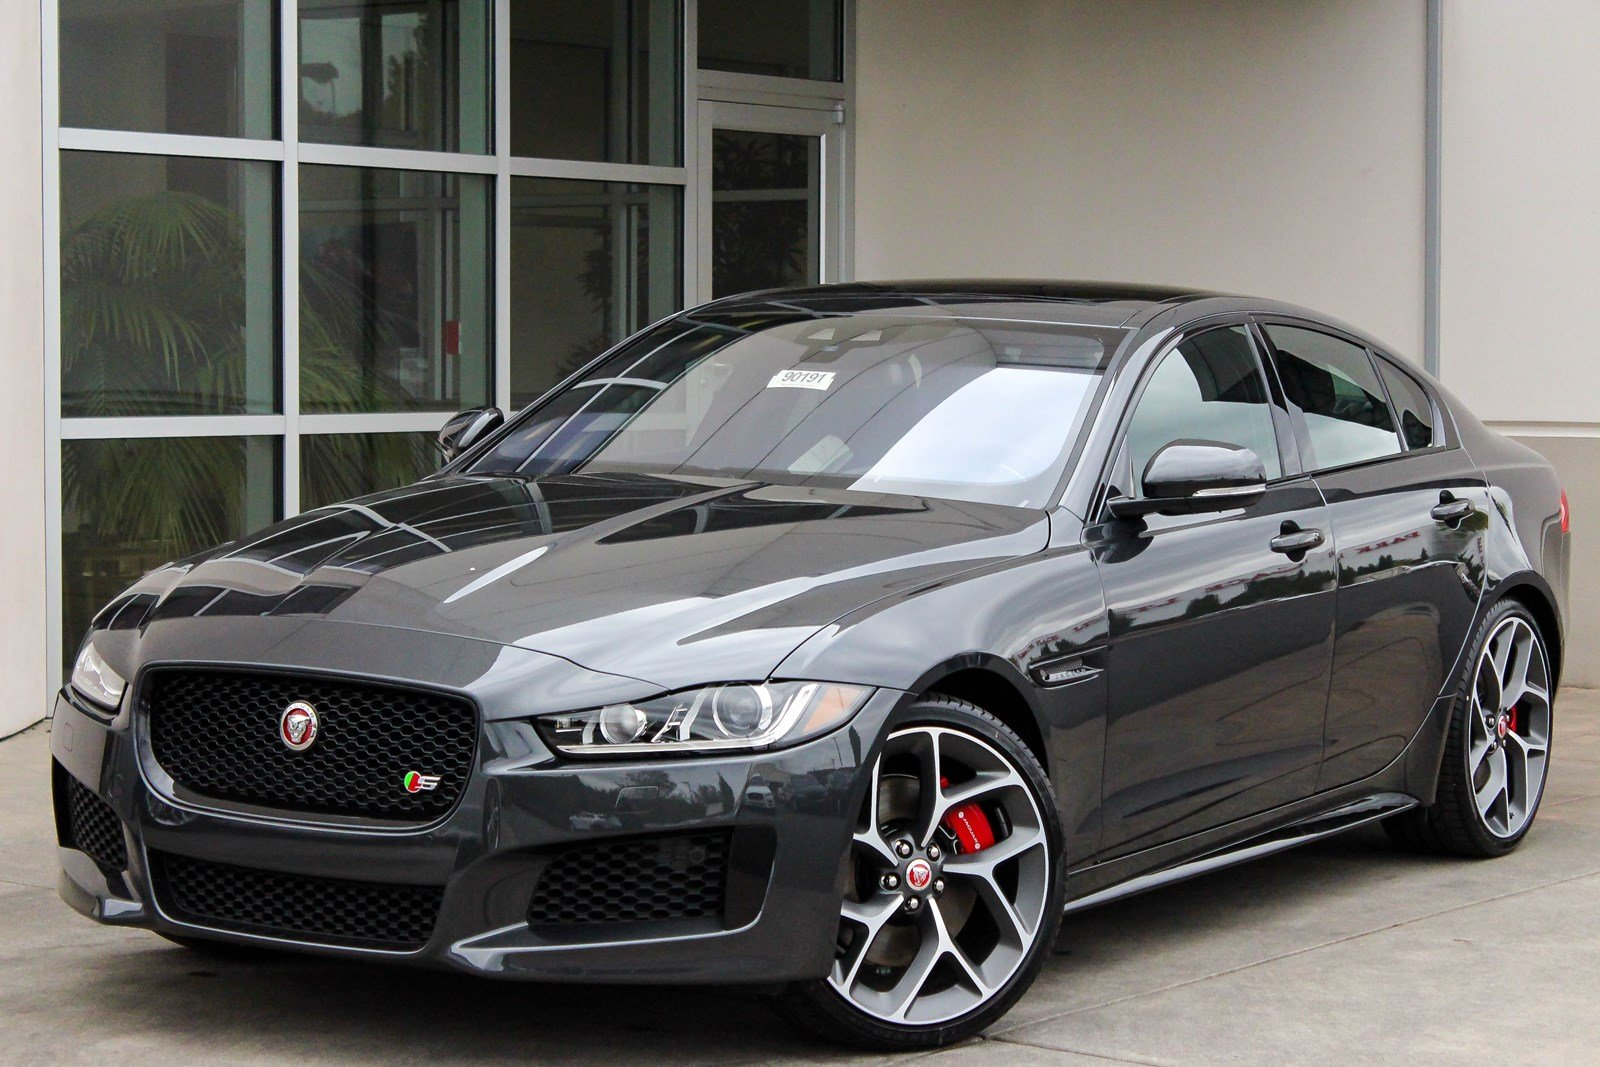 new 2018 jaguar xe s 4dr car in bellevue 90191 jaguar bellevue. Black Bedroom Furniture Sets. Home Design Ideas